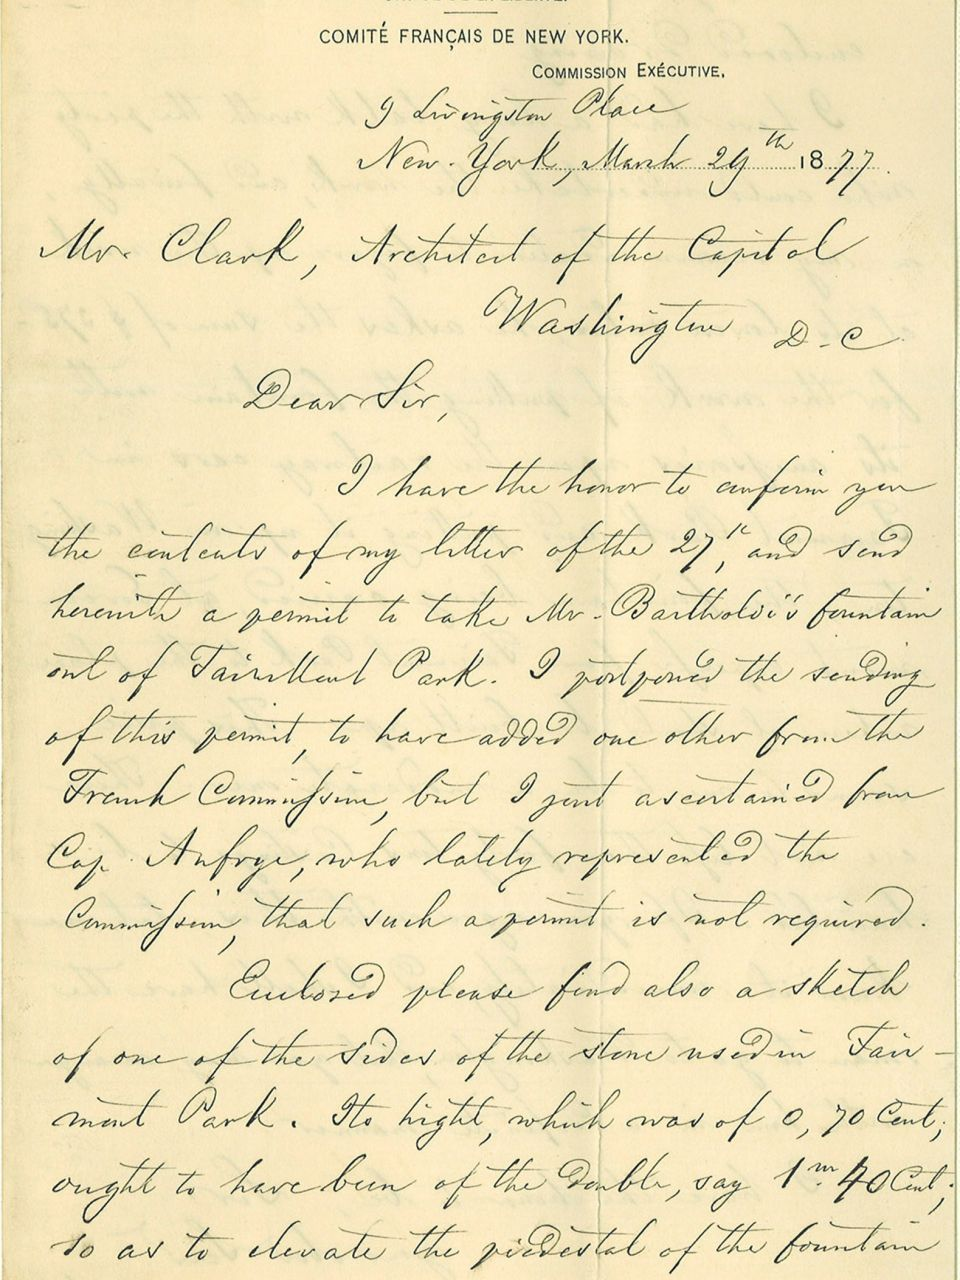 Letter to Architect of the Capitol Edward Clark regarding moving the Bartholdi Fountain from Fairmont Park in New York to Washington, D.C.